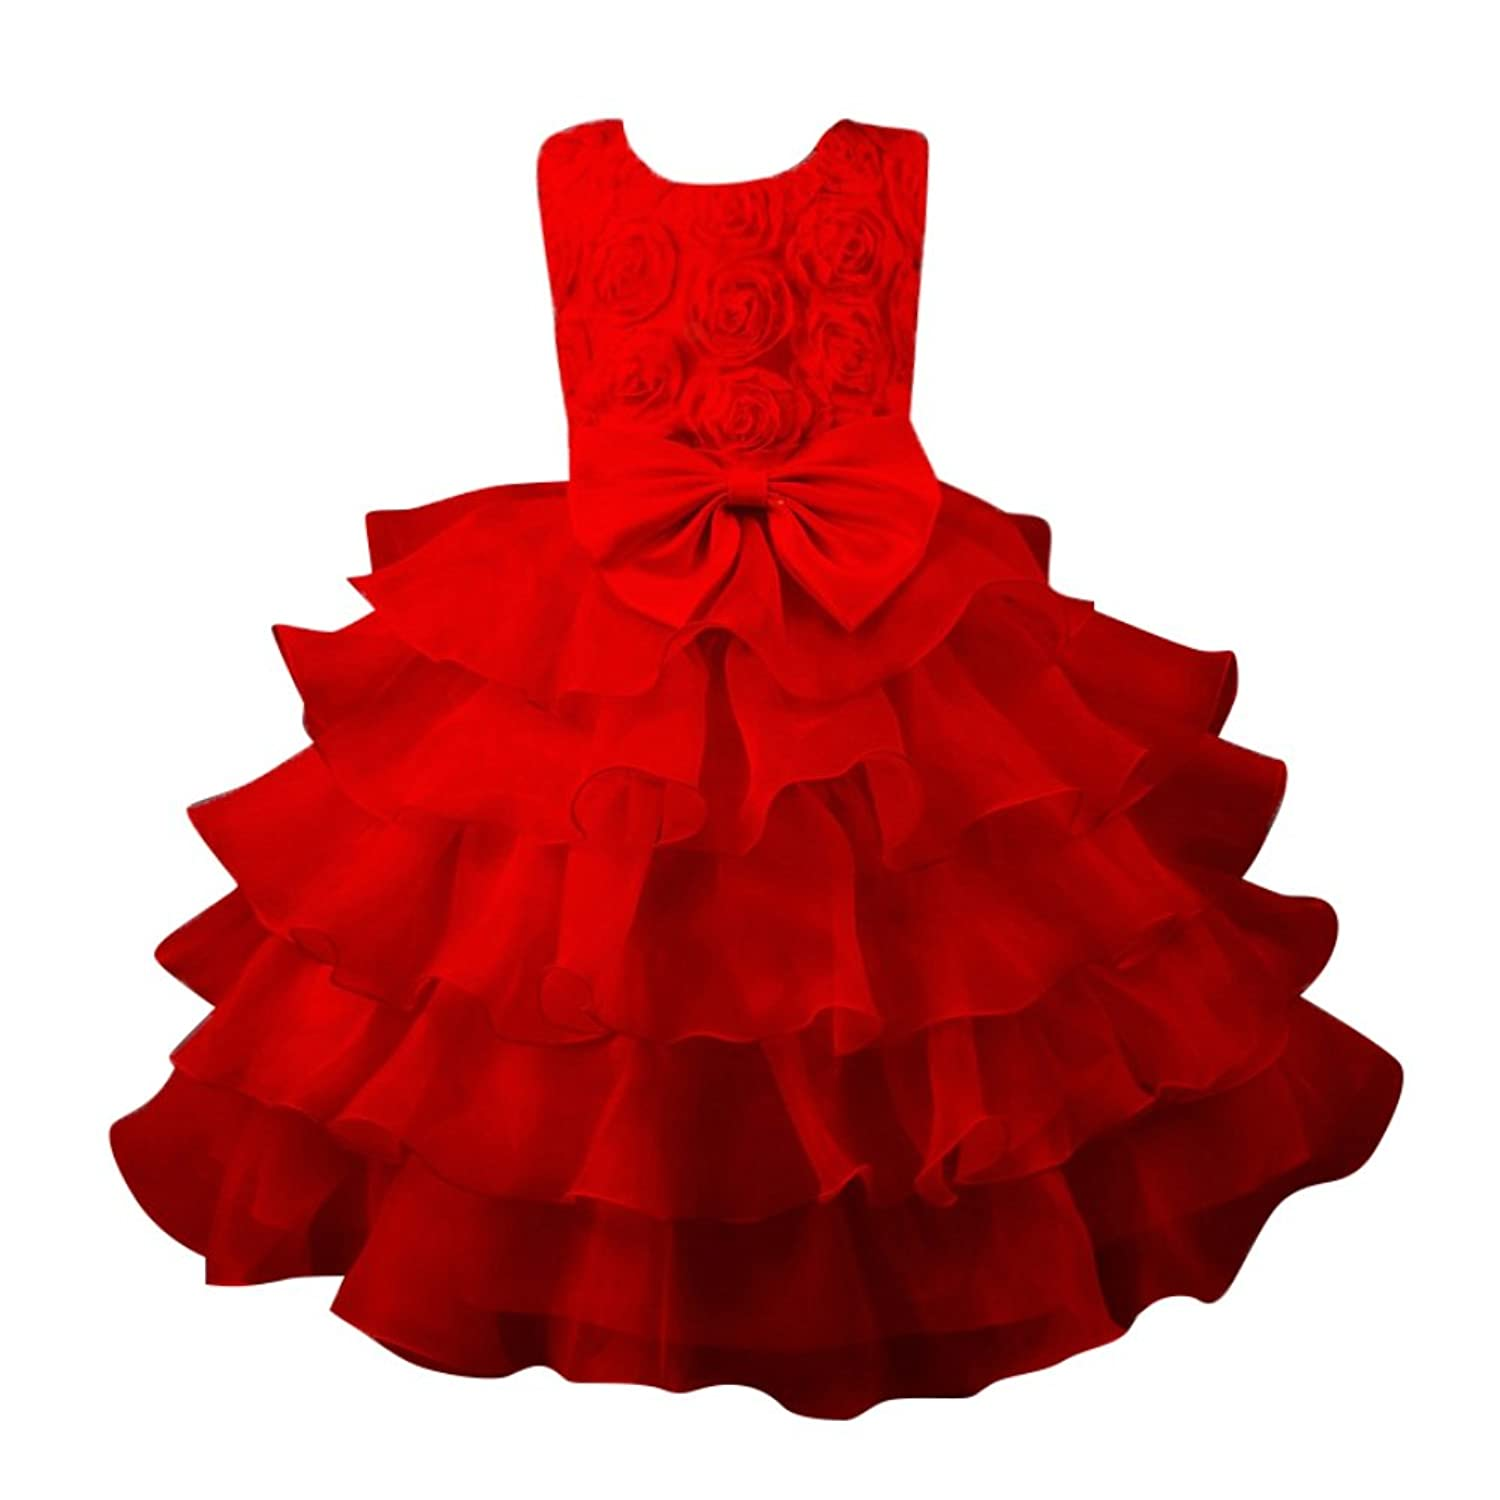 Balai Kids Fille Ruffle Bowknot Dentelle Robes Party Wedding Dresses